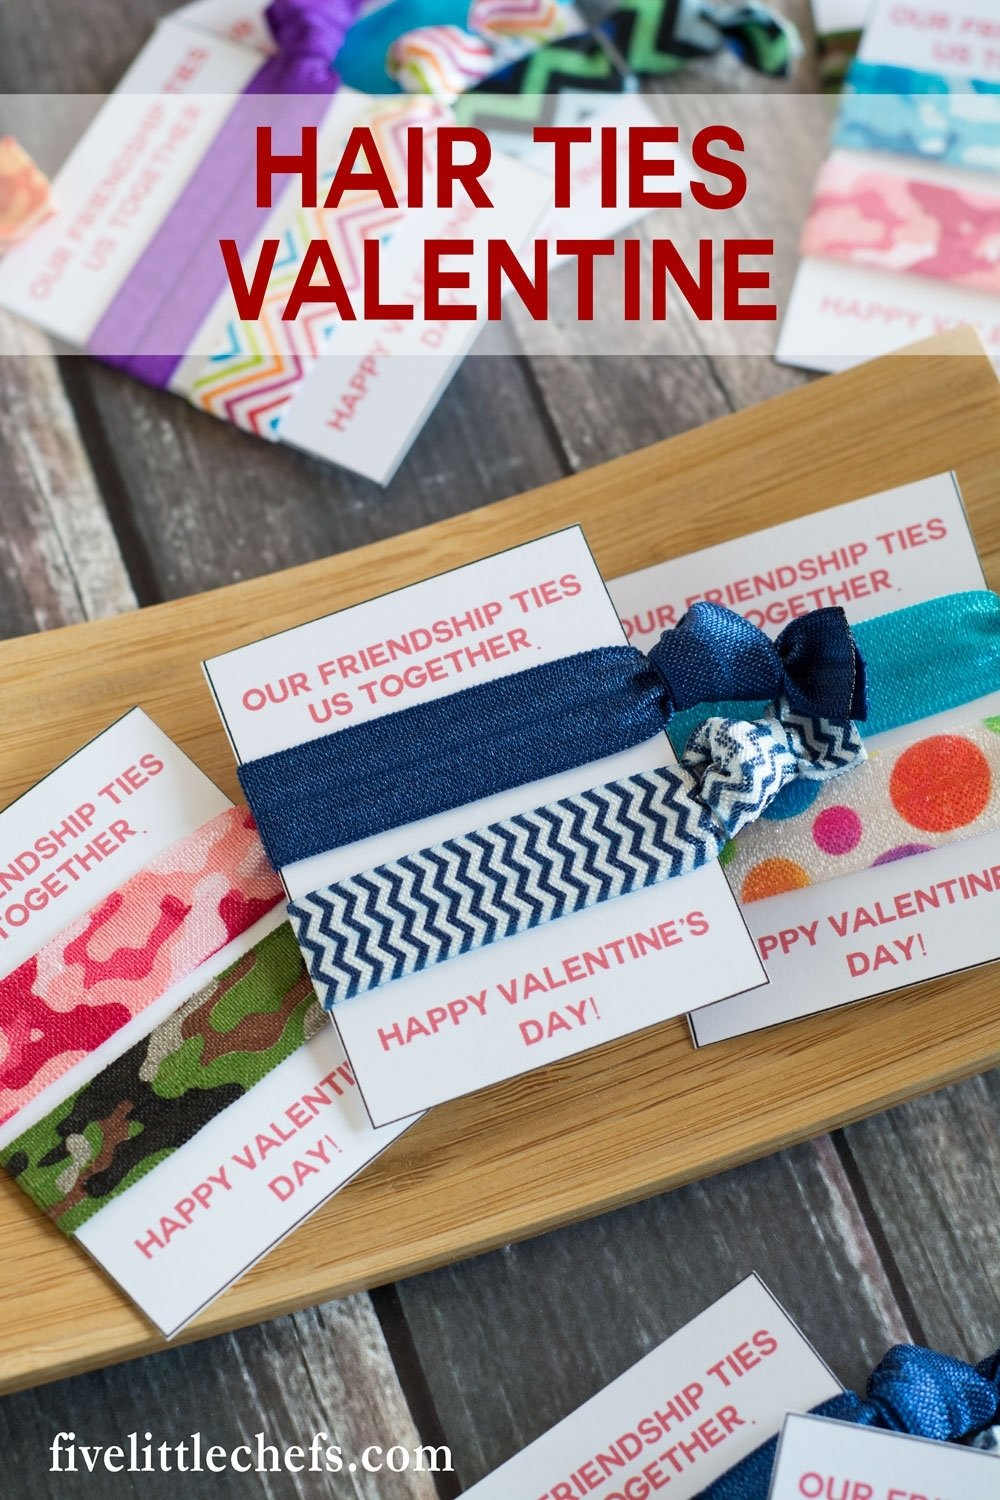 10 Unique Cute Valentines Day Ideas For Friends hair ties valentine five little chefs 2020